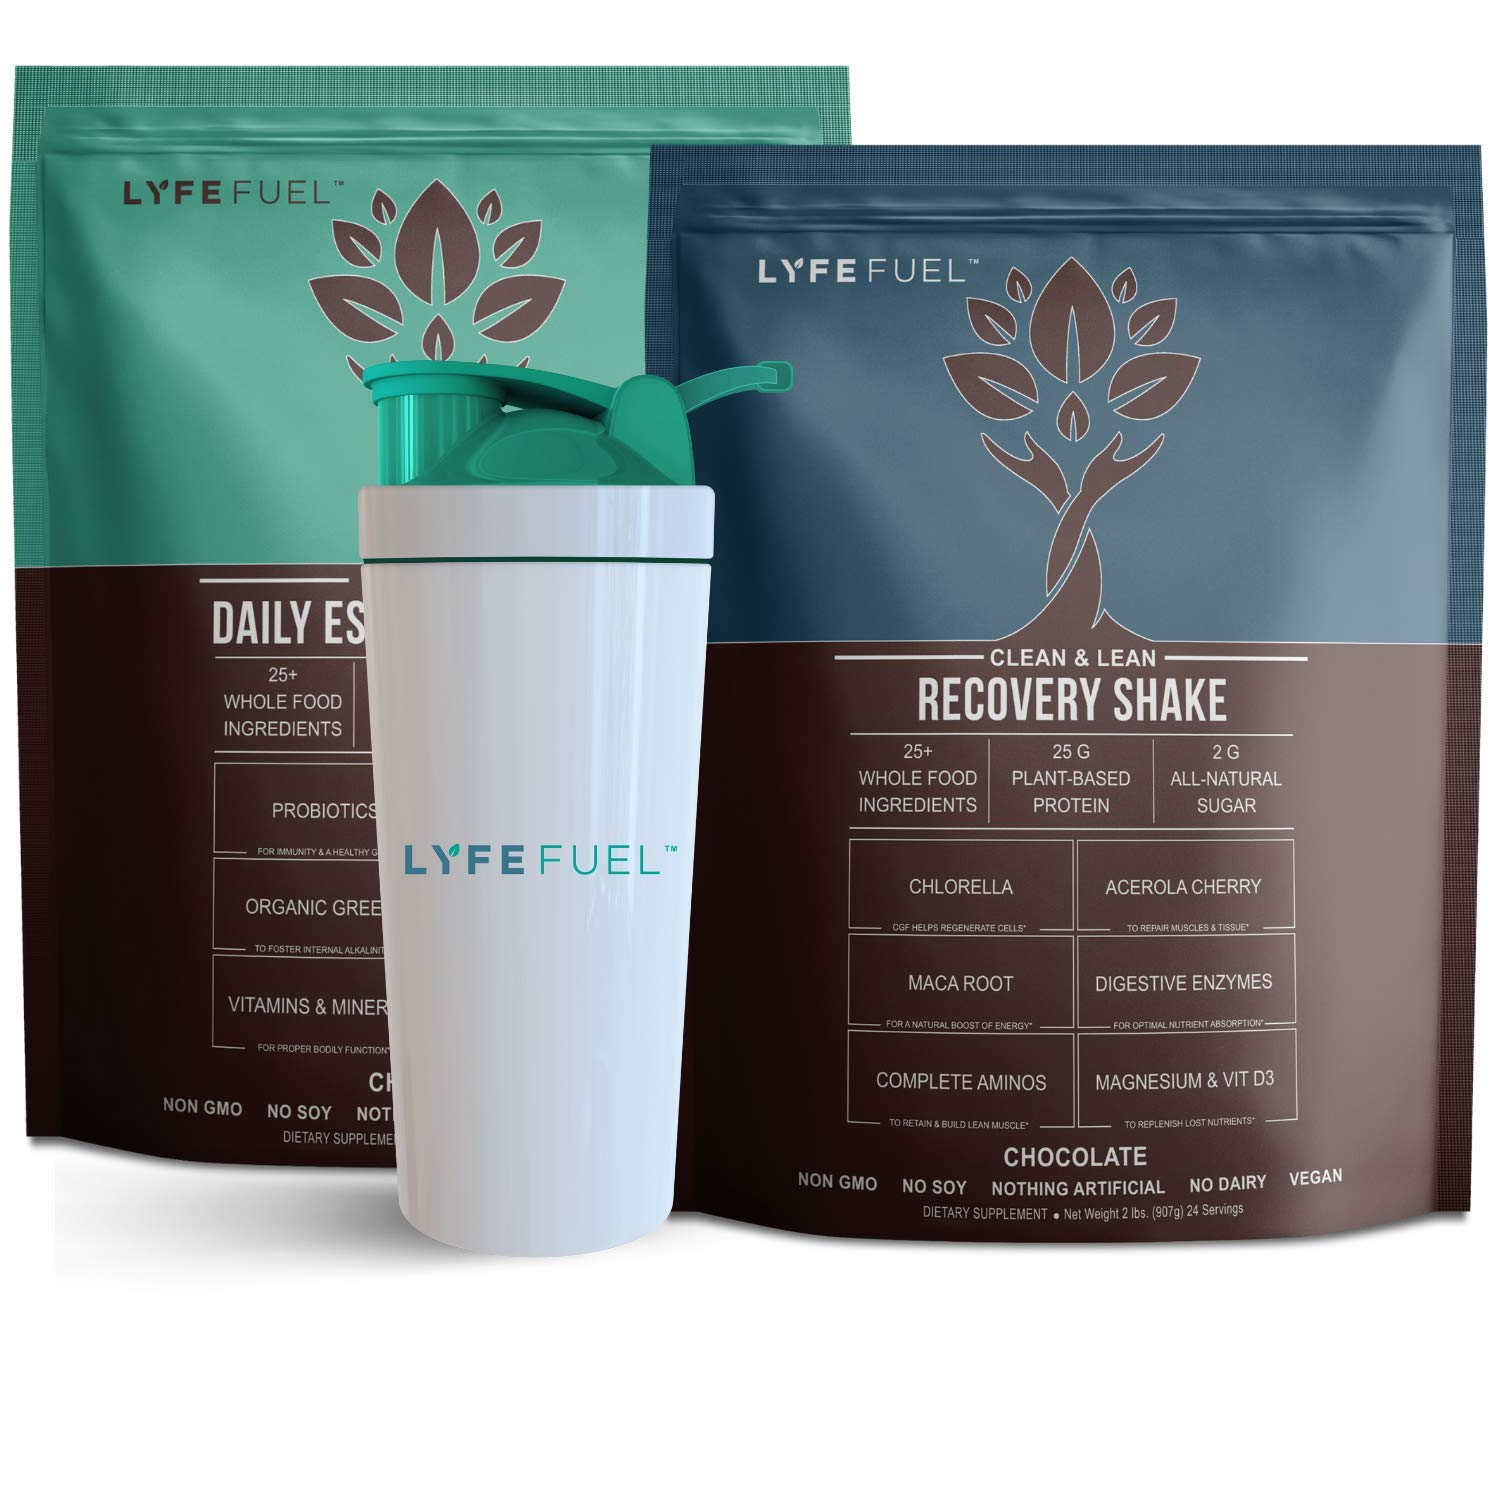 LYFE FUEL Meal Replacement + Post Workout Recovery Shake Bundle | Keto, Vegan & Gluten Free Plant Based Protein | Chocolate + Chocolate | Made with Superfoods + Organic Greens | 48 Servings